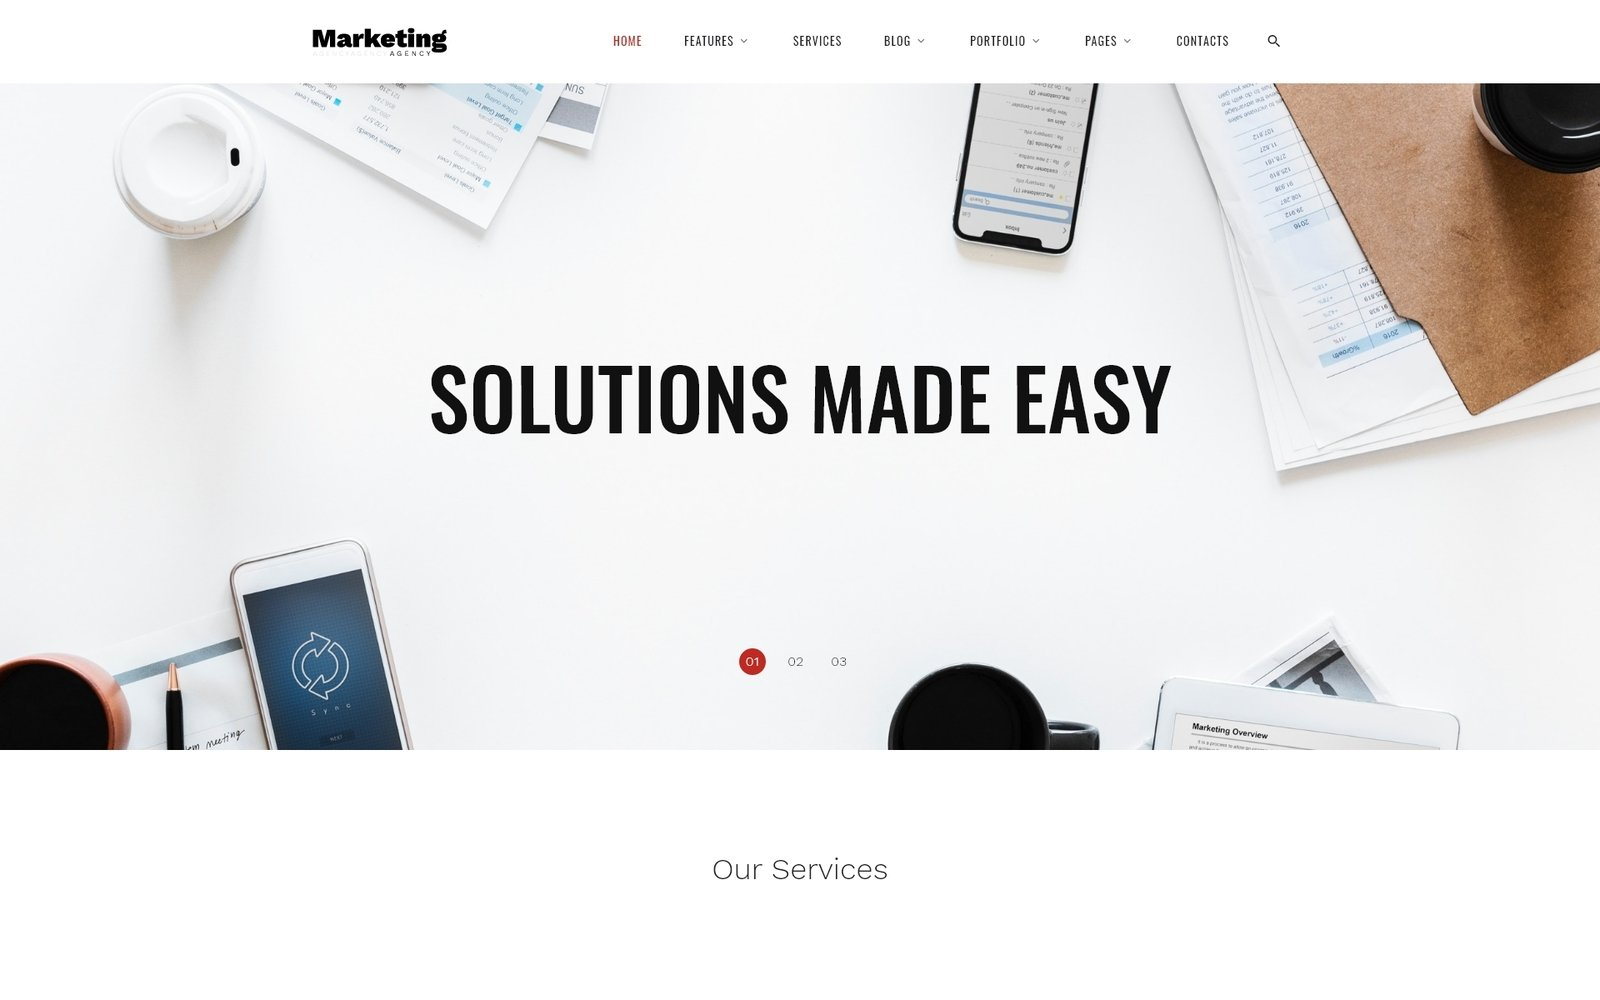 """Marketing Agency - Responsive Marketing Agency Multipage"" 响应式网页模板 #69397"